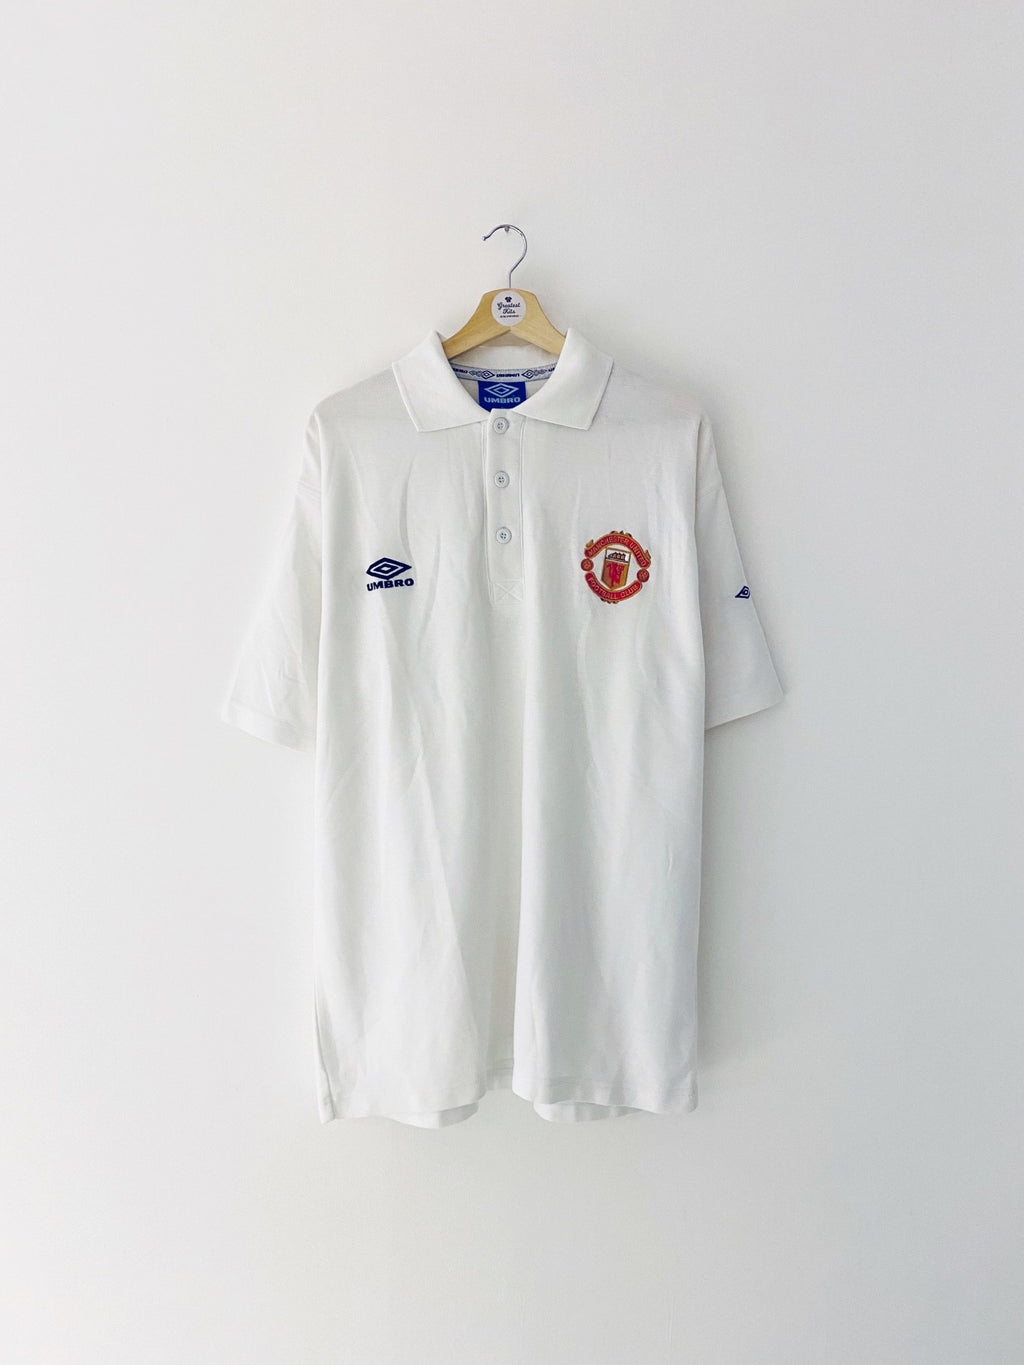 1998/99 Manchester United Polo Shirt (XL) 9/10